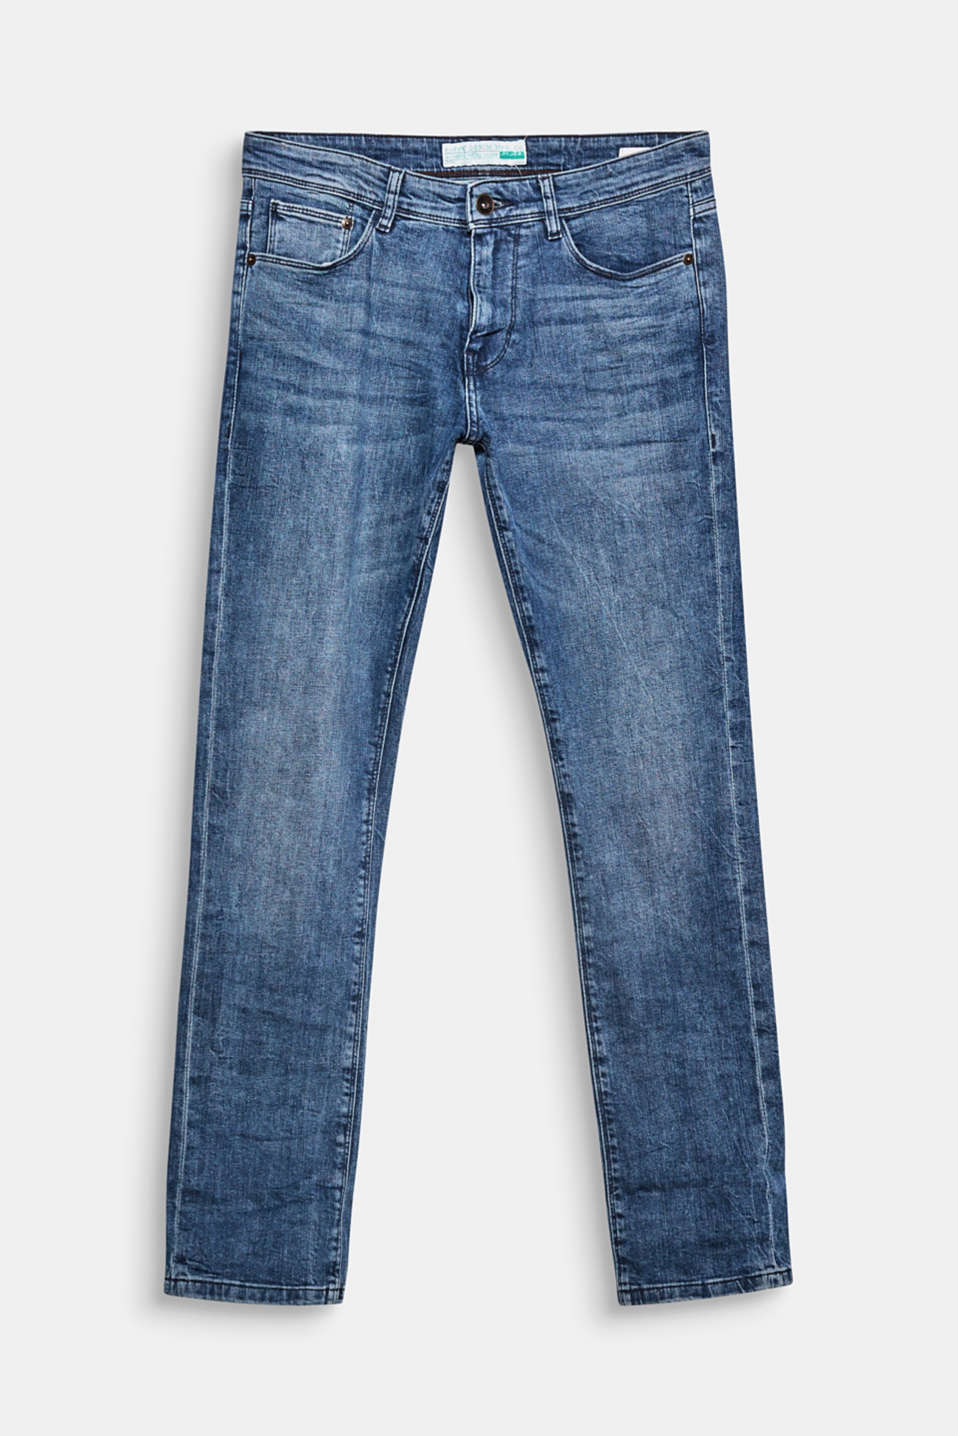 Five-pocket jeans in an authentic look with garment-washed effects and whiskering